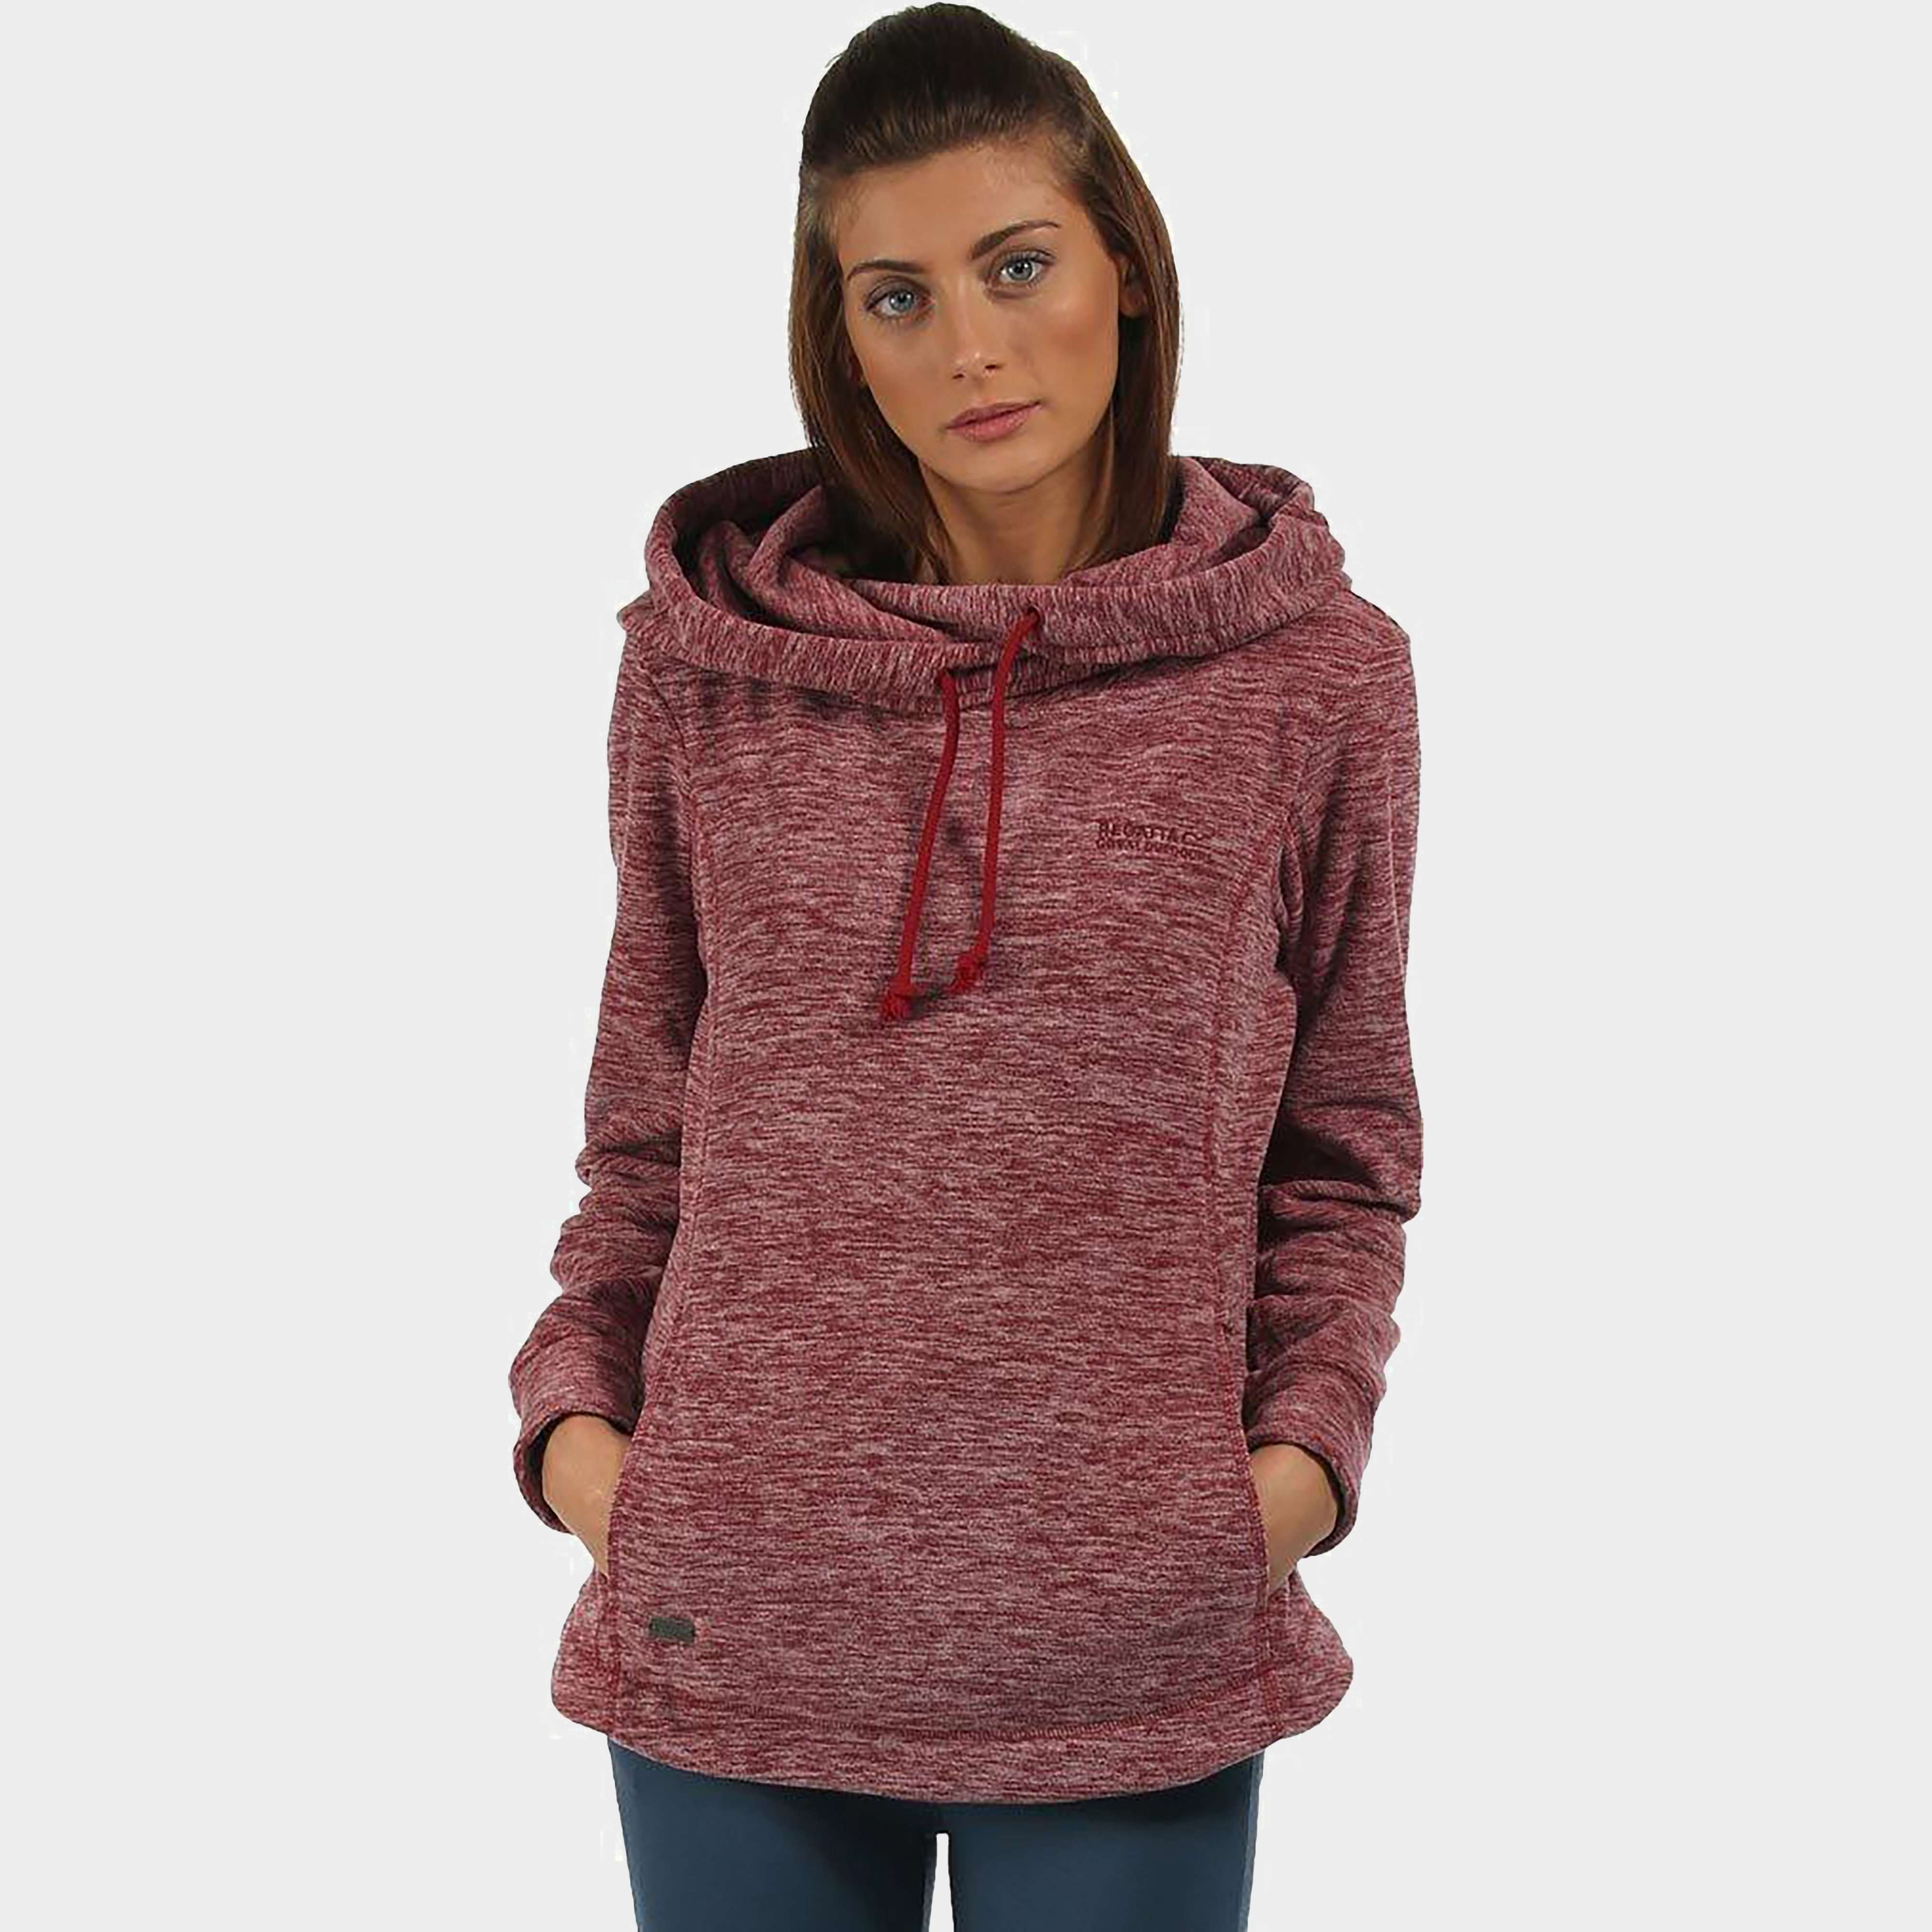 REGATTA Women's Kizmit Hooded Top